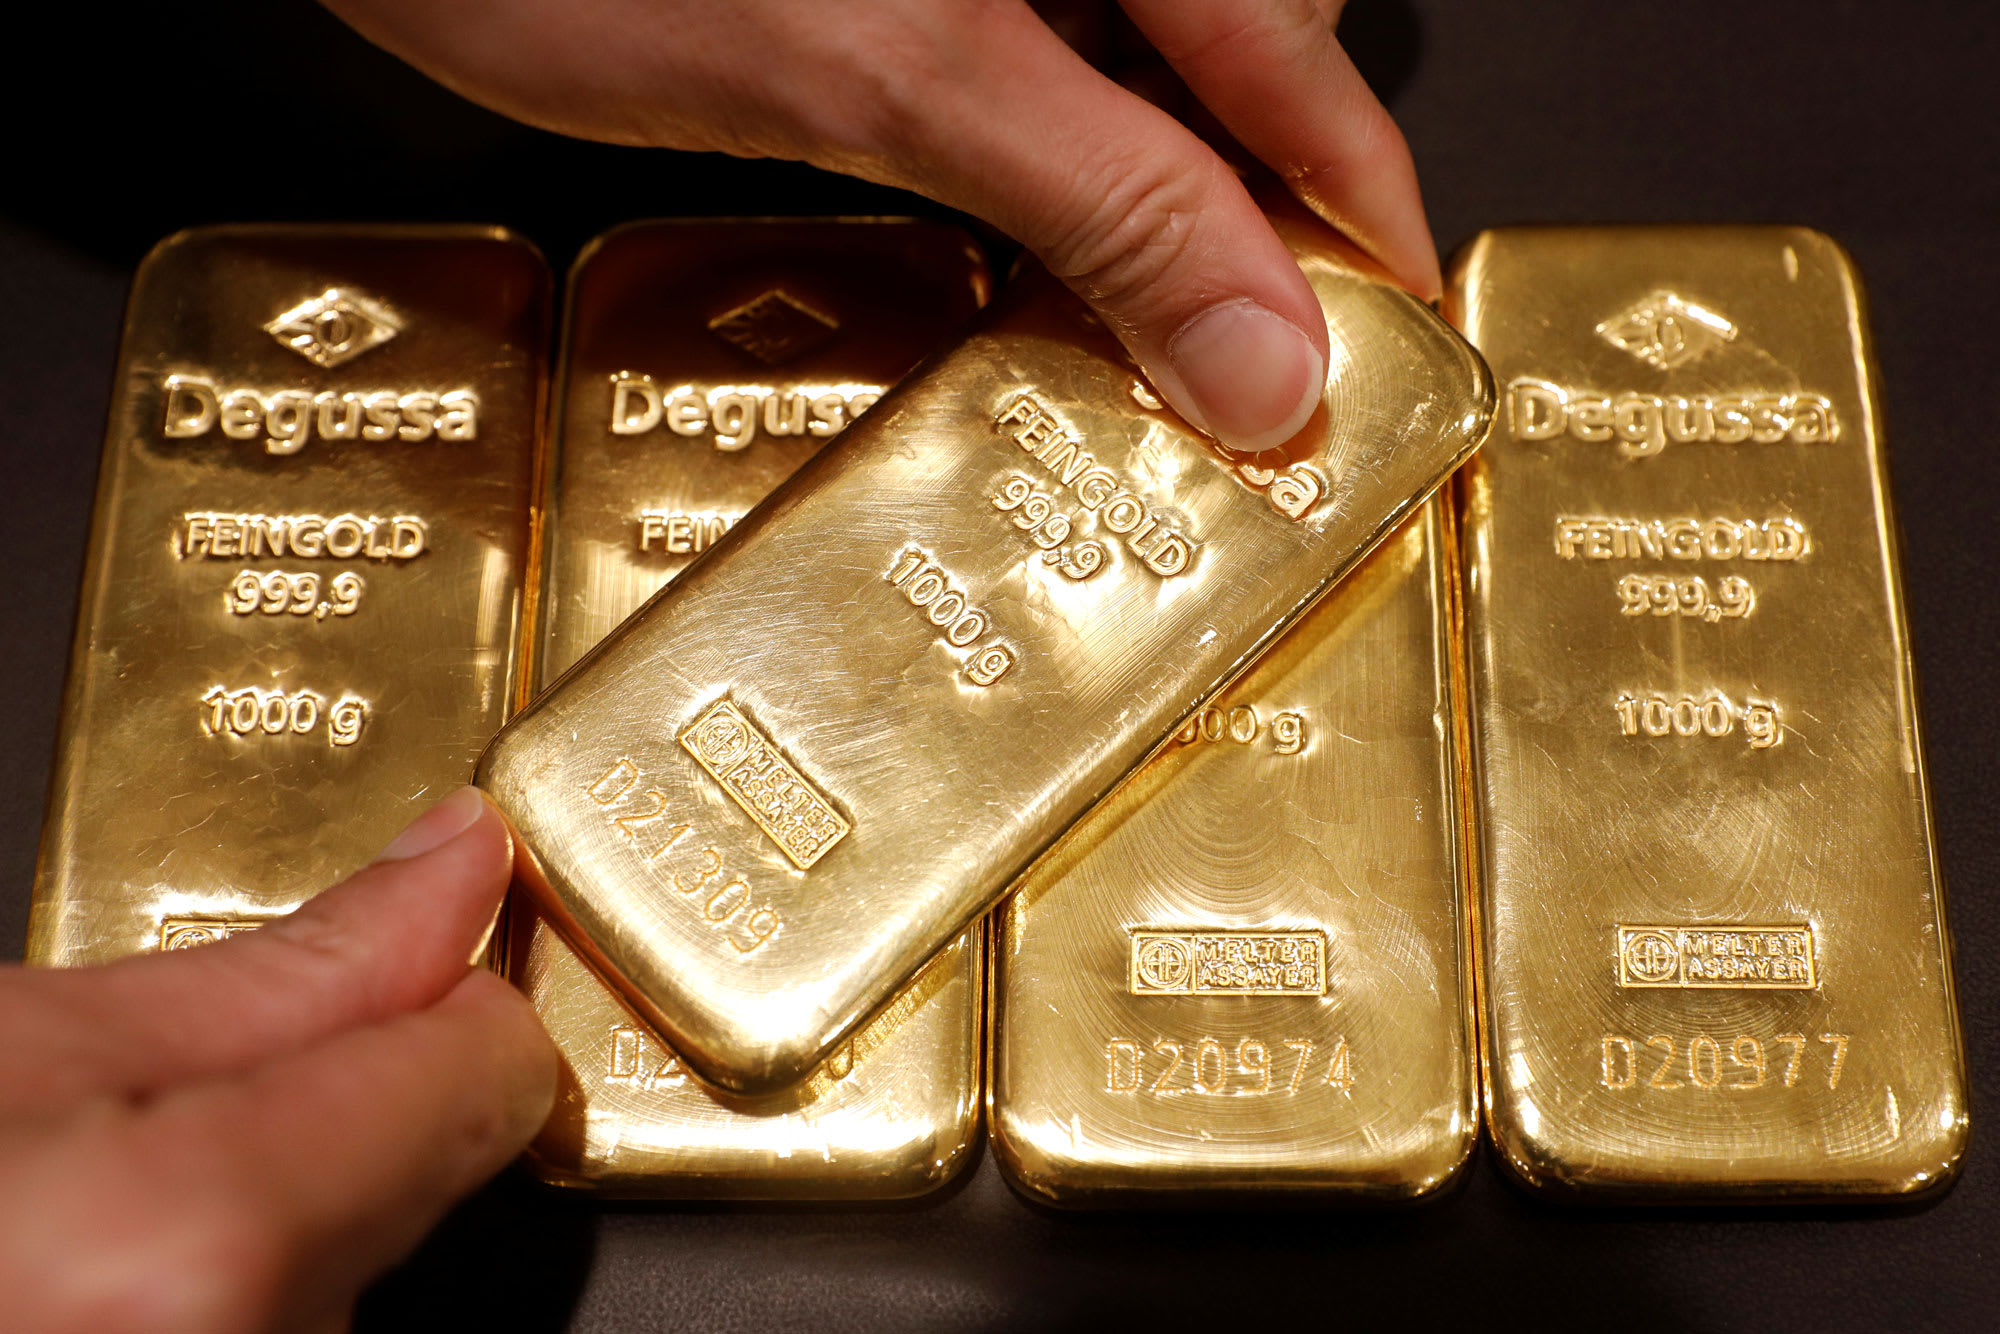 Goldman Sachs pushes gold, based in part on growing popularity of deficit-spending theory